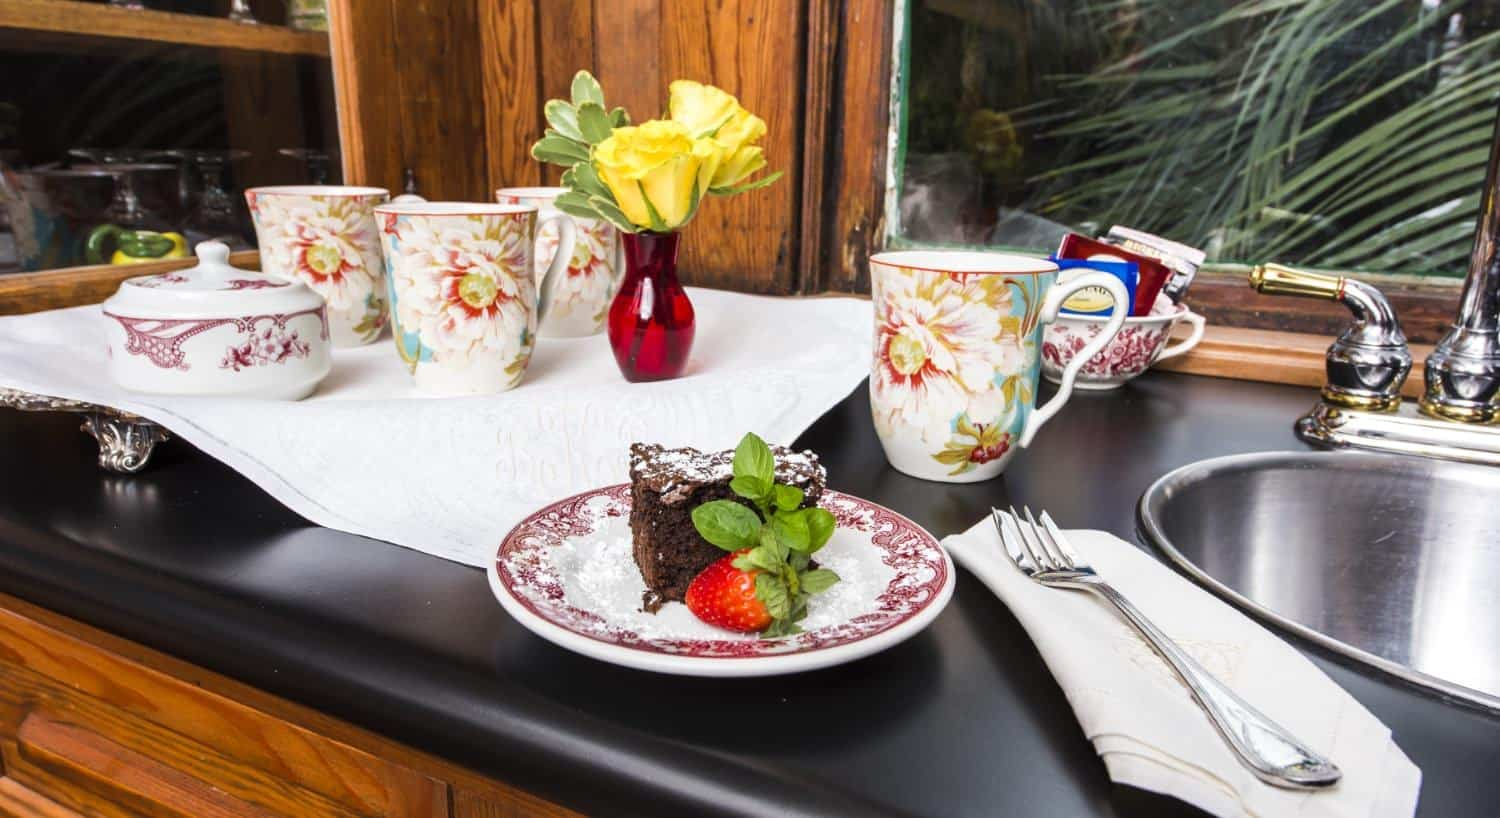 Red and white China plates with chocolate cake dusted with powdered sugar, strawberry, and mint leaves